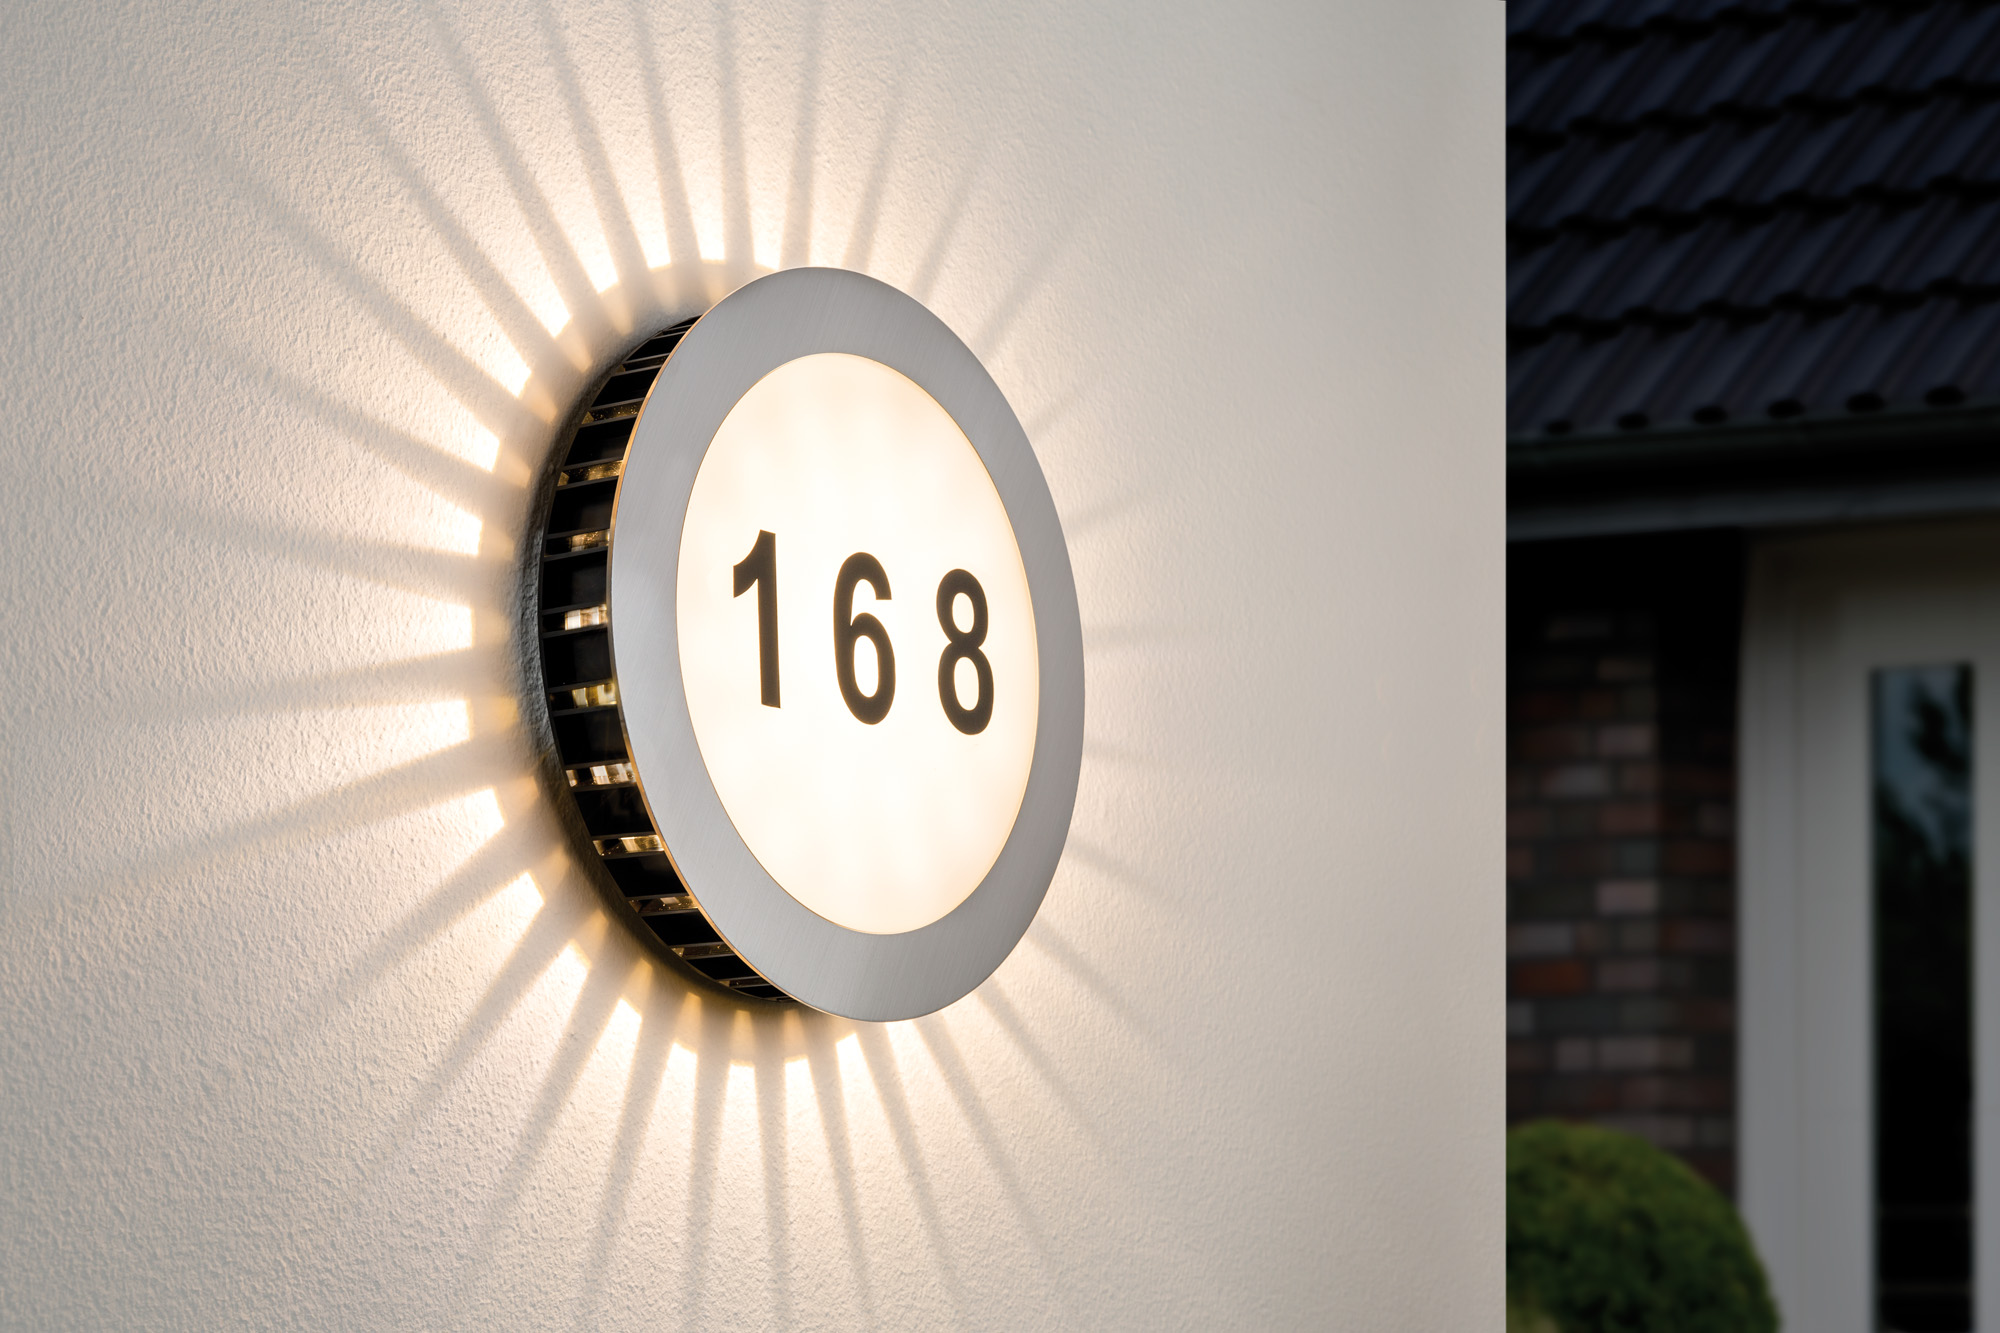 Eclairage num ro de maison ext rieur sun led paulmann ip44 for Eclairage exterieur maison led